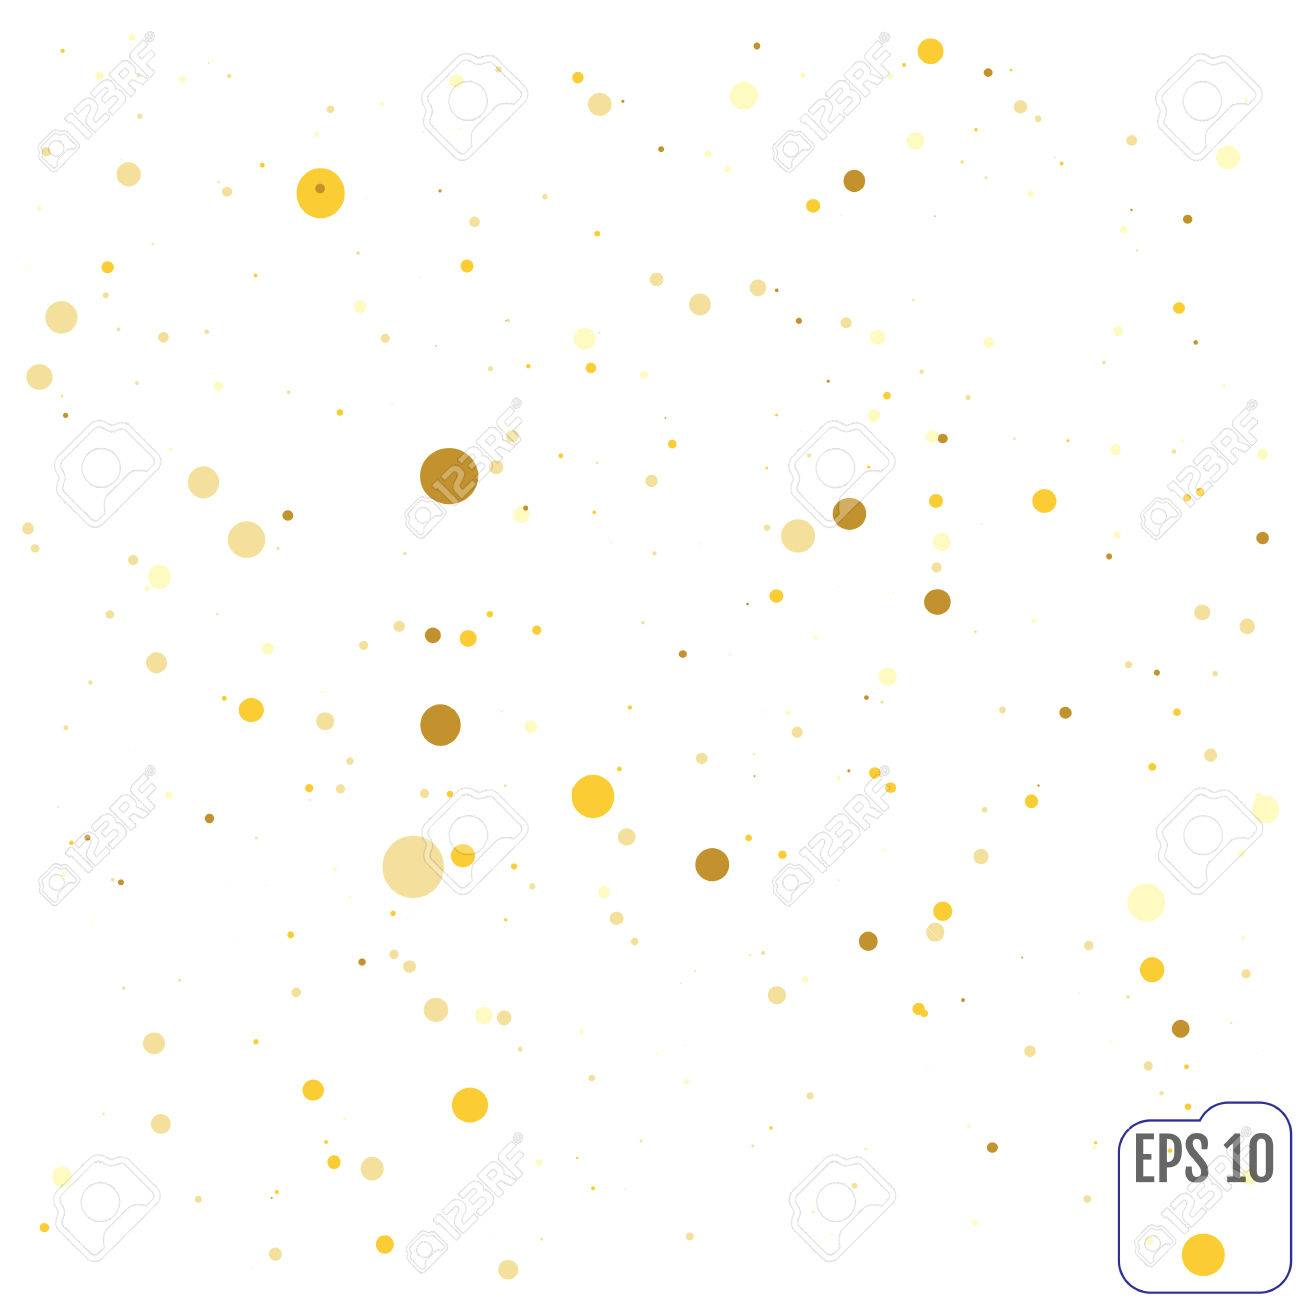 Polka dot gold confetti clip art. texture background for wedding...